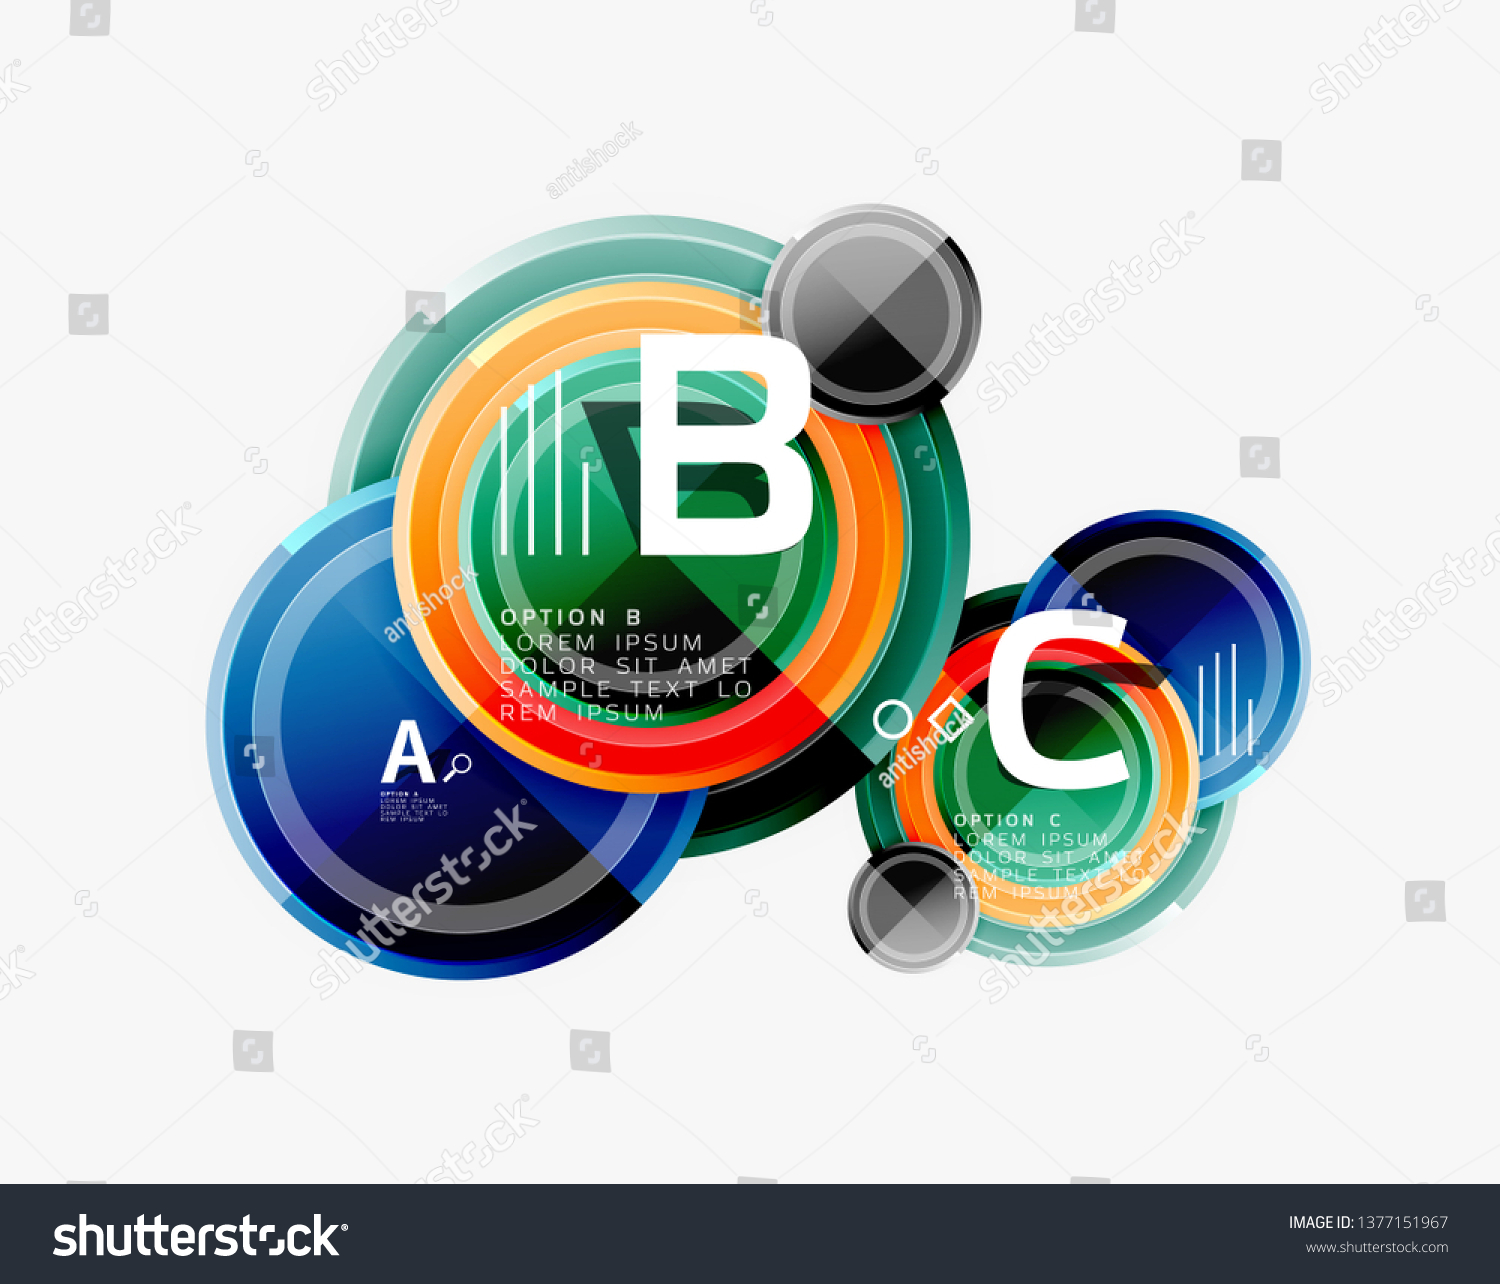 Abstract round geometric shapes, modern circles background. Vector illustration #1377151967